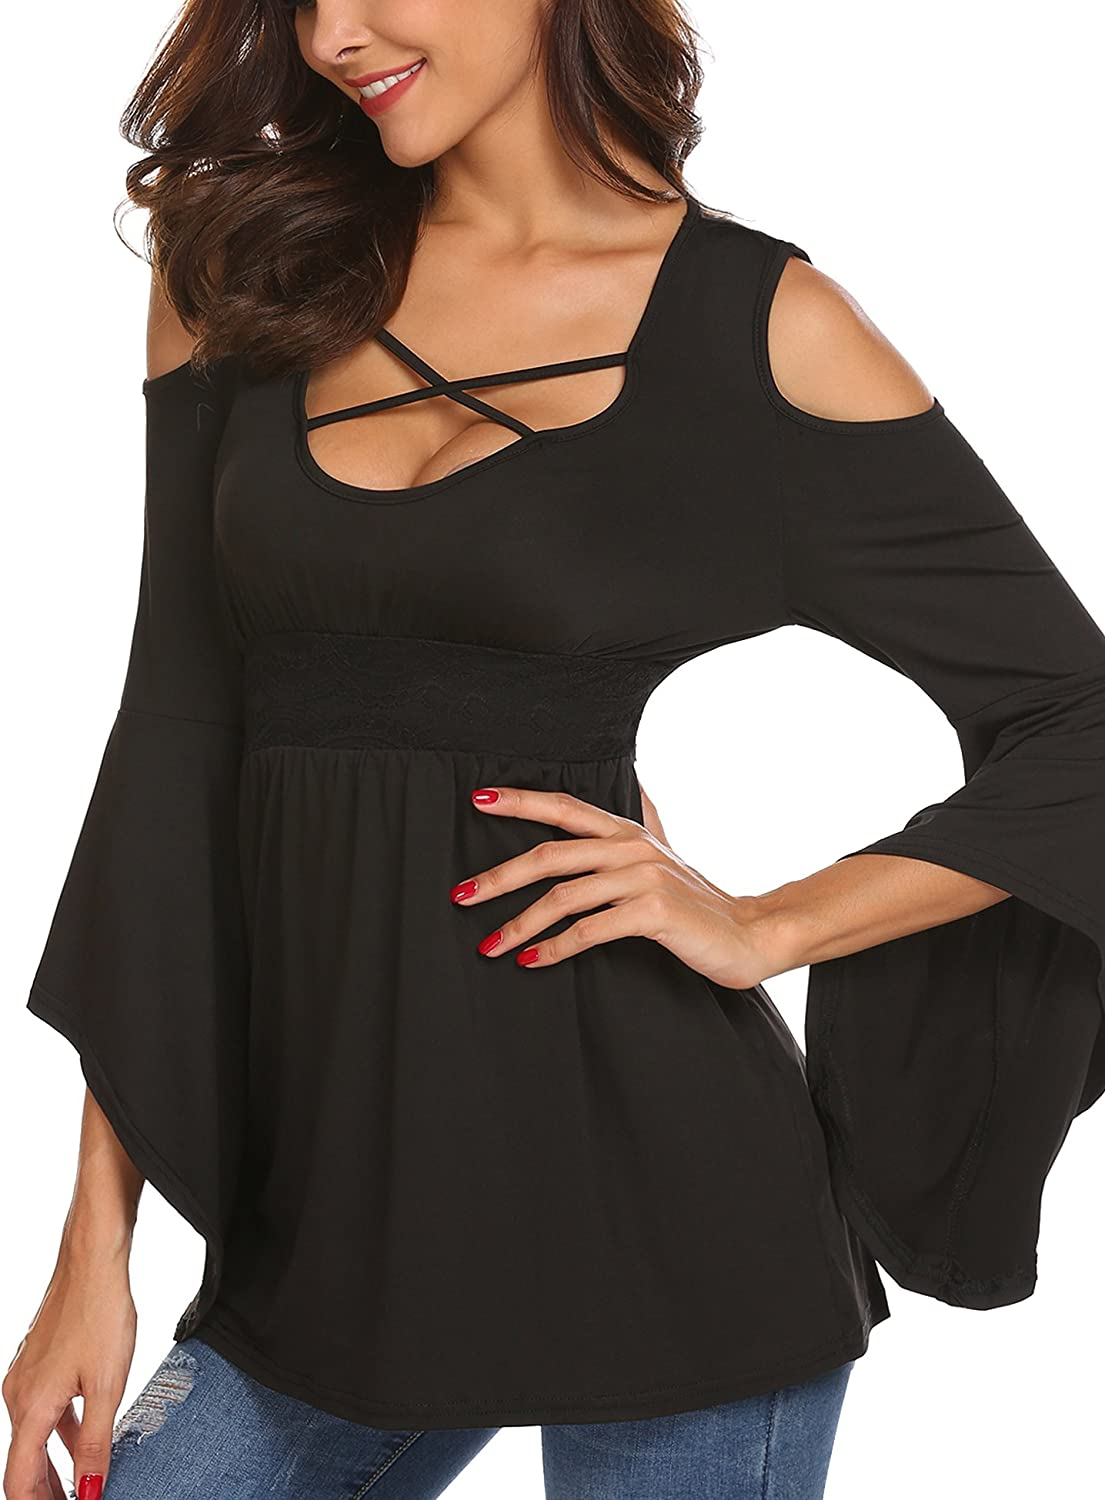 Women/'s Criss Cross Caged 3//4 Sleeve Relaxed Casual Fashion Tunic Top Shirt